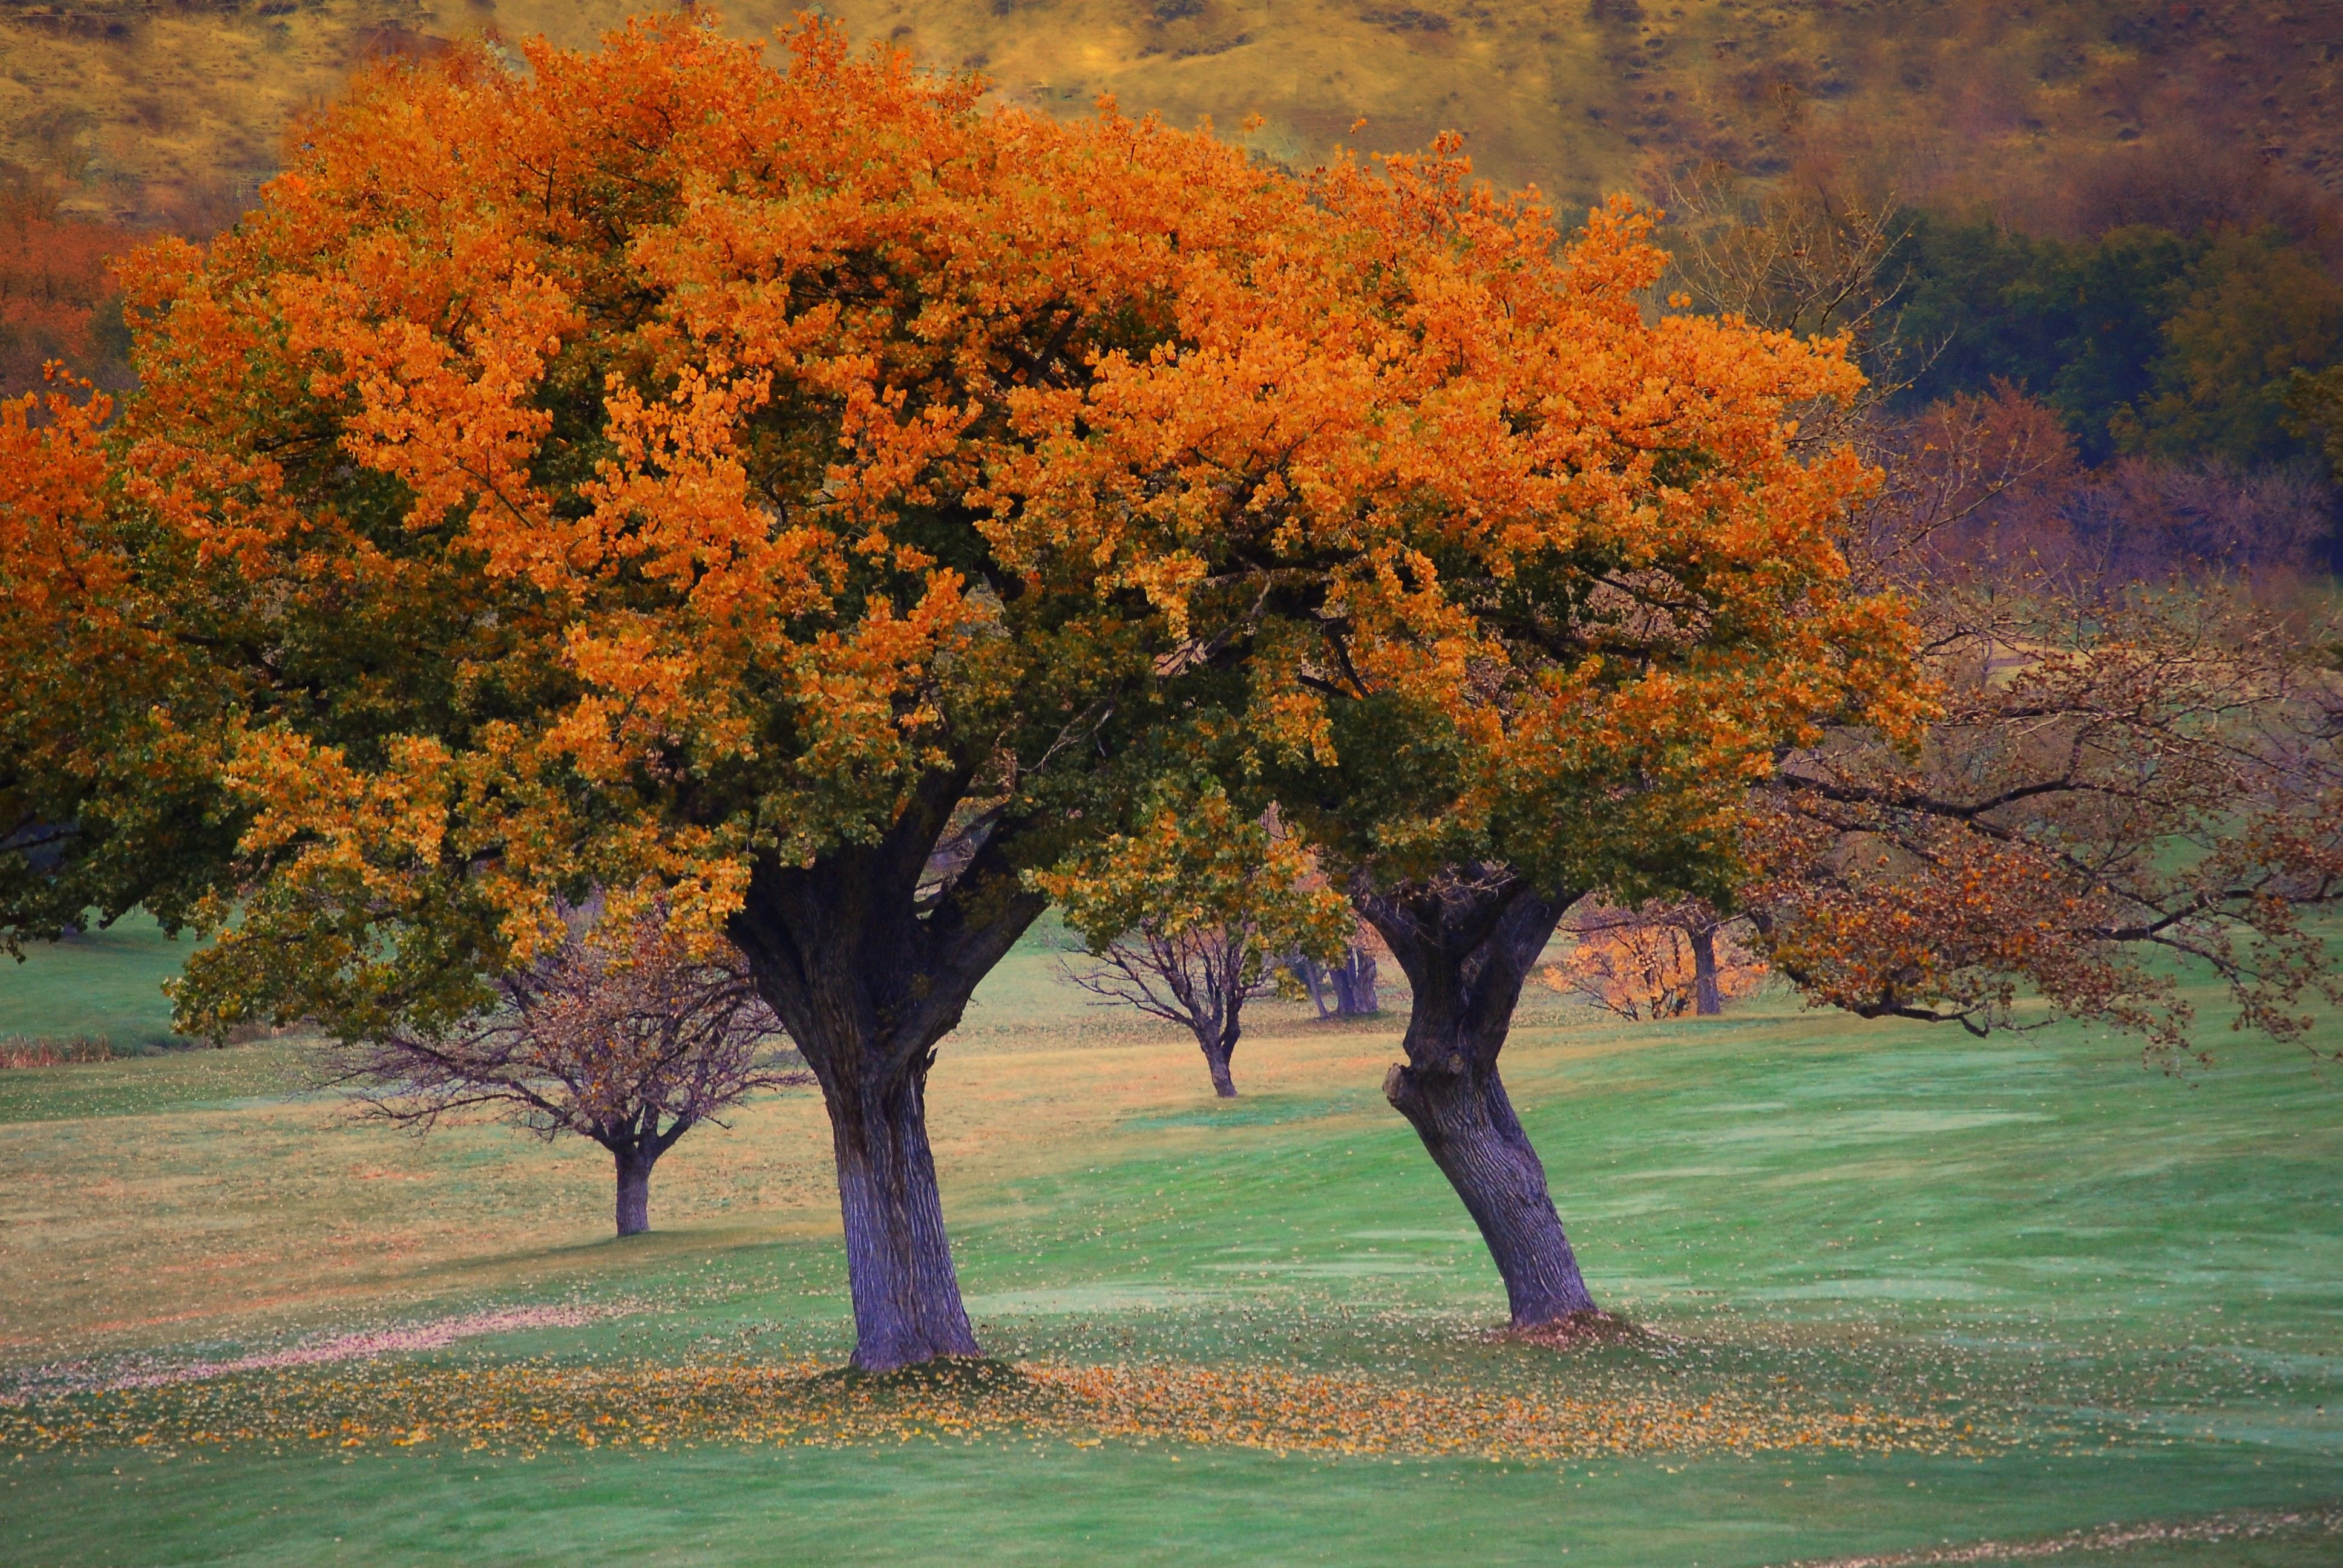 Trees with changing leaves in the autumn.